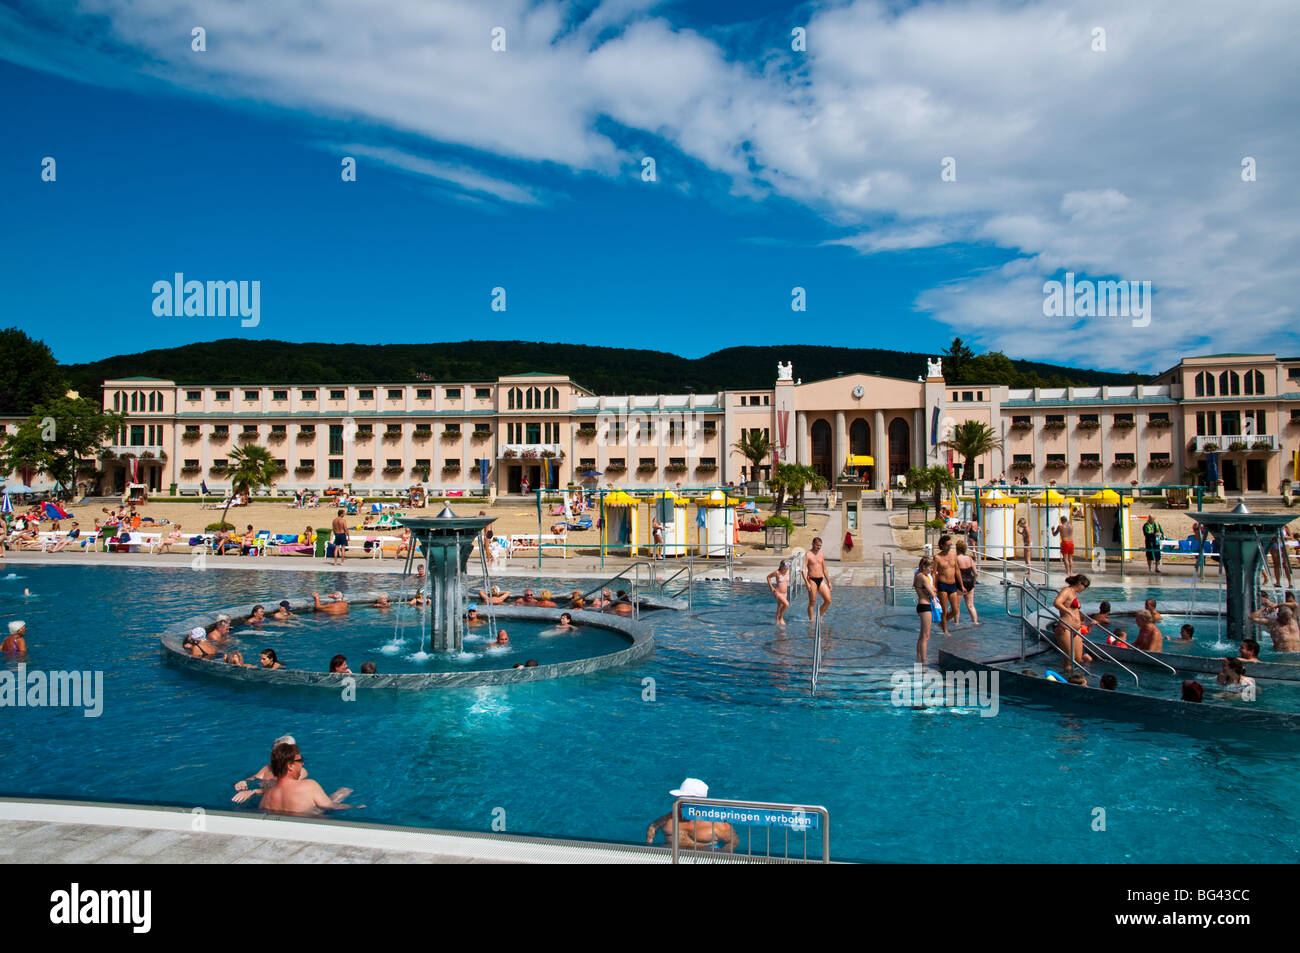 thermalbecken strandbad baden bei wien nieder sterreich stock photo 27135372 alamy. Black Bedroom Furniture Sets. Home Design Ideas